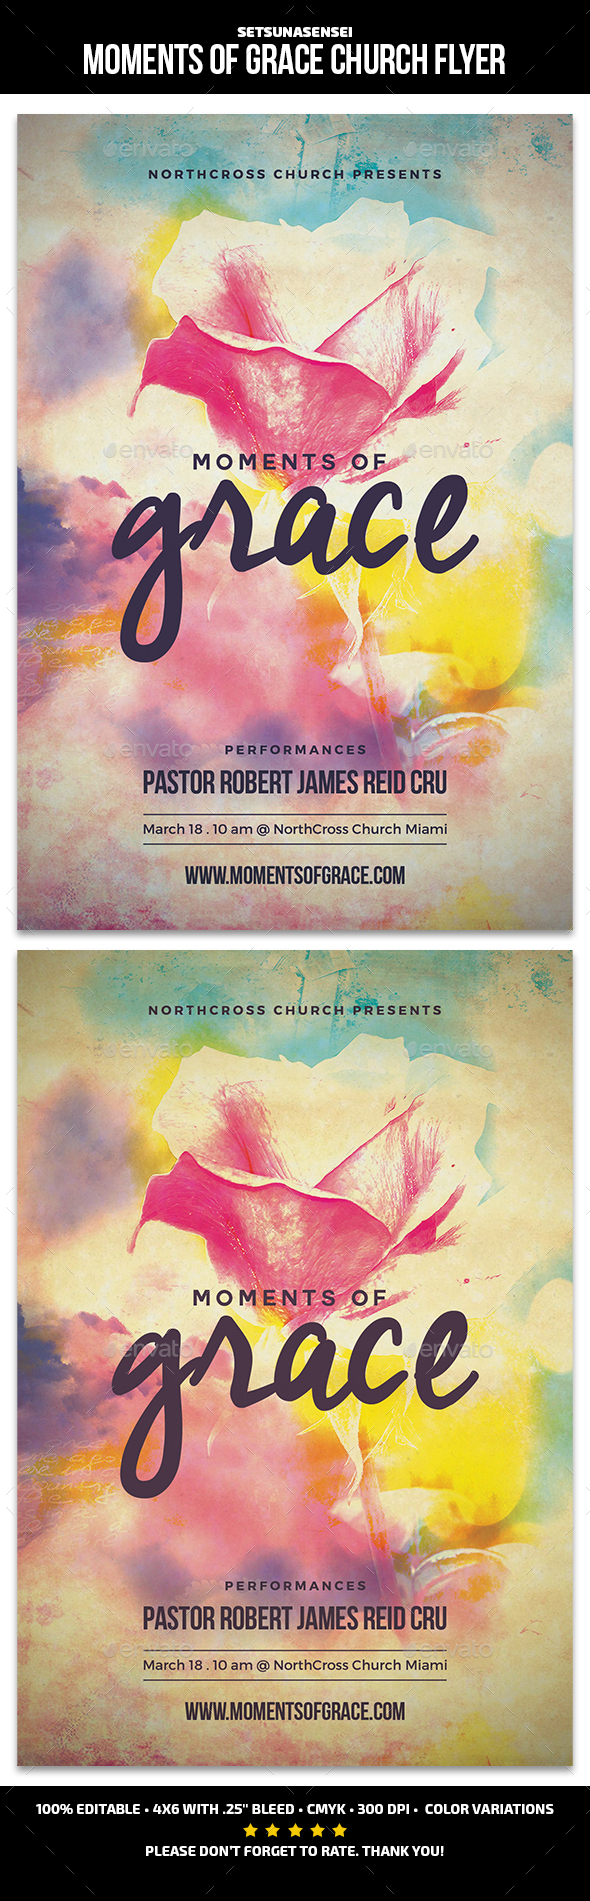 Moments of Grace Church Flyer Template PSD. Download here: http://graphicriver.net/item/moments-of-grace-church-flyer/16683209?ref=ksioks